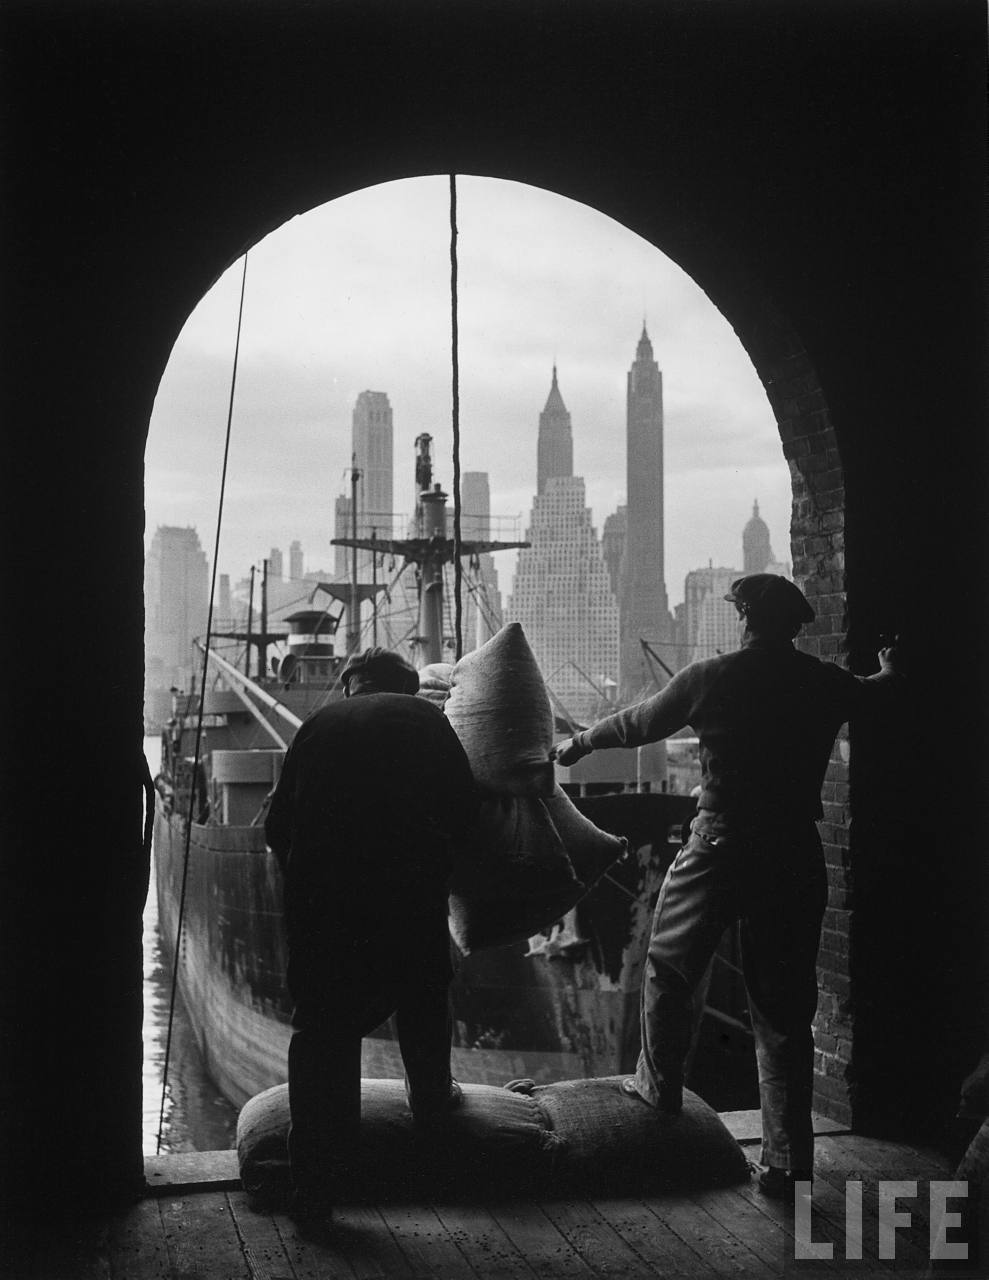 bygoneamericana:  Men unloading coffee at Brooklyn dock. New York, 1949. By Andreas Feininger